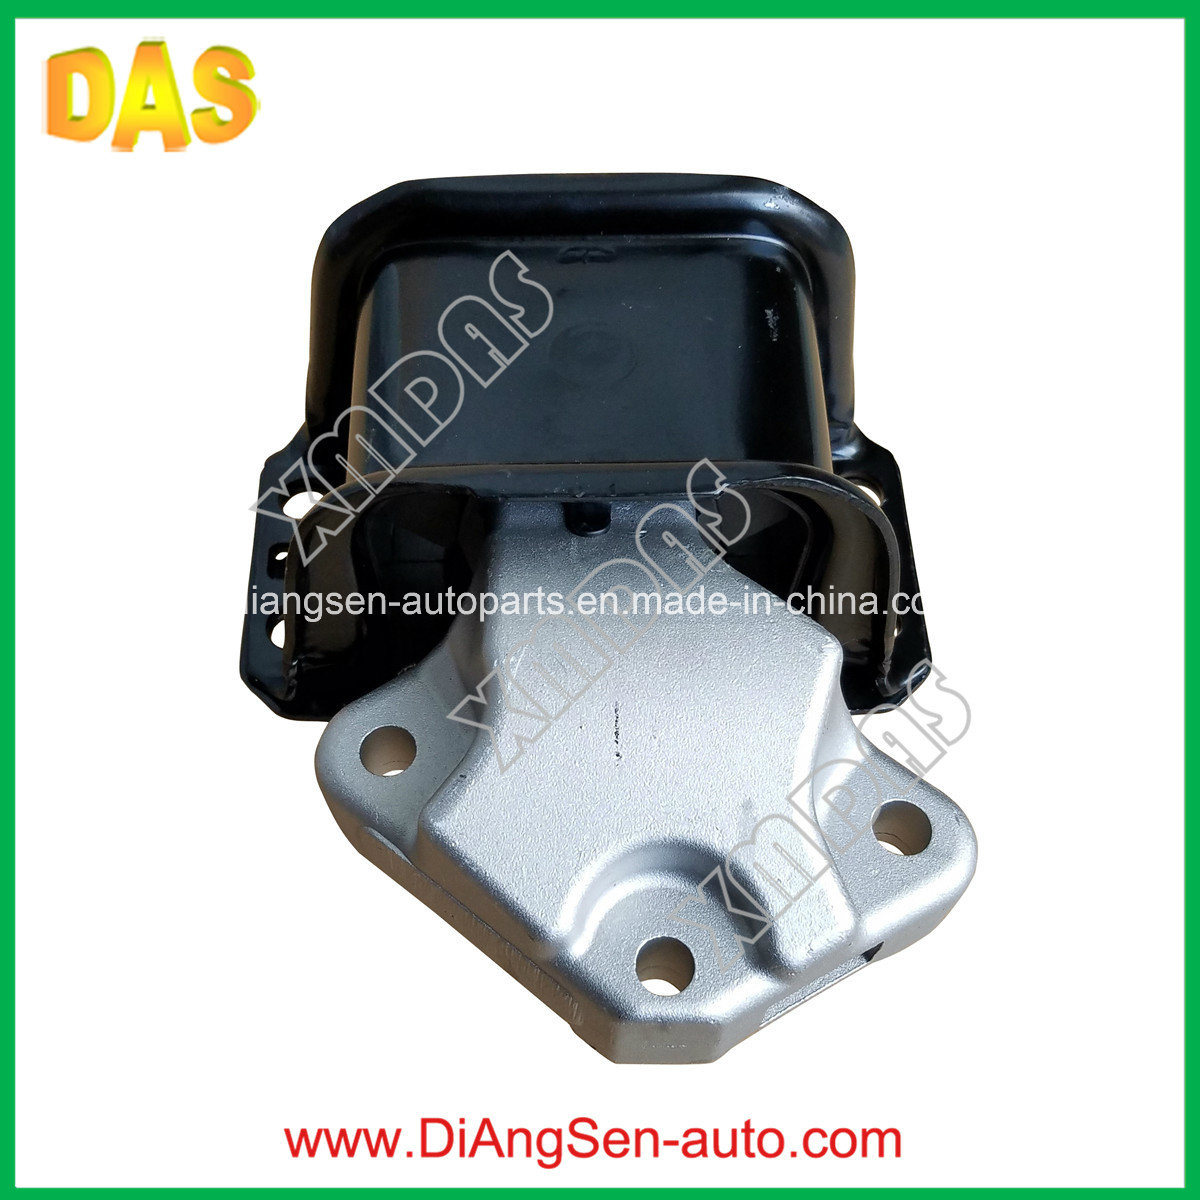 Auto Spare Rubber Parts Engine Motor Mounting for Peugeot 1807  GF |  IBUYautoparts com